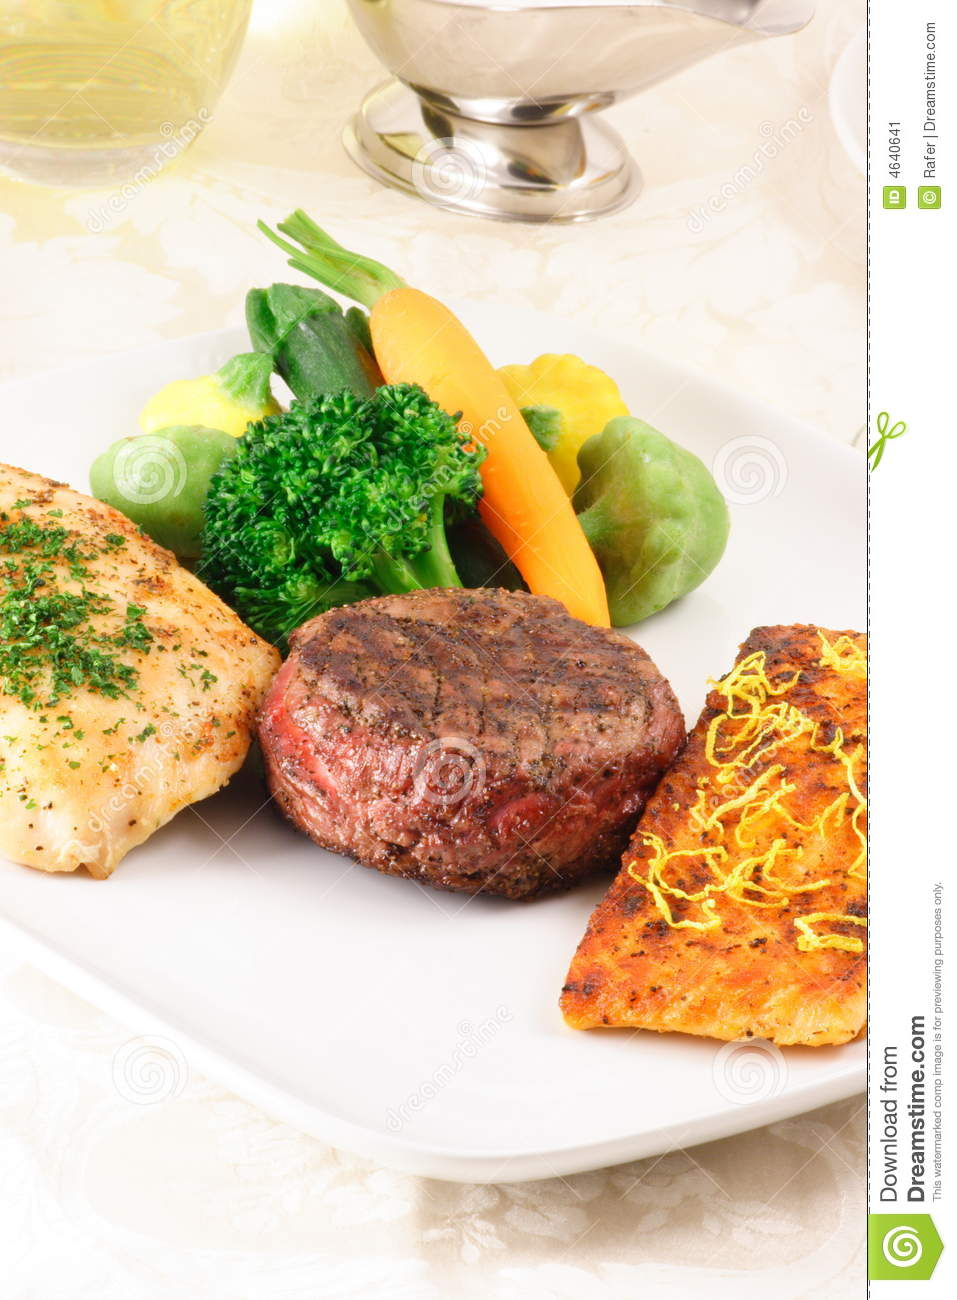 Beef fish and chicken feast stock image image 4640641 for Fish and chicken